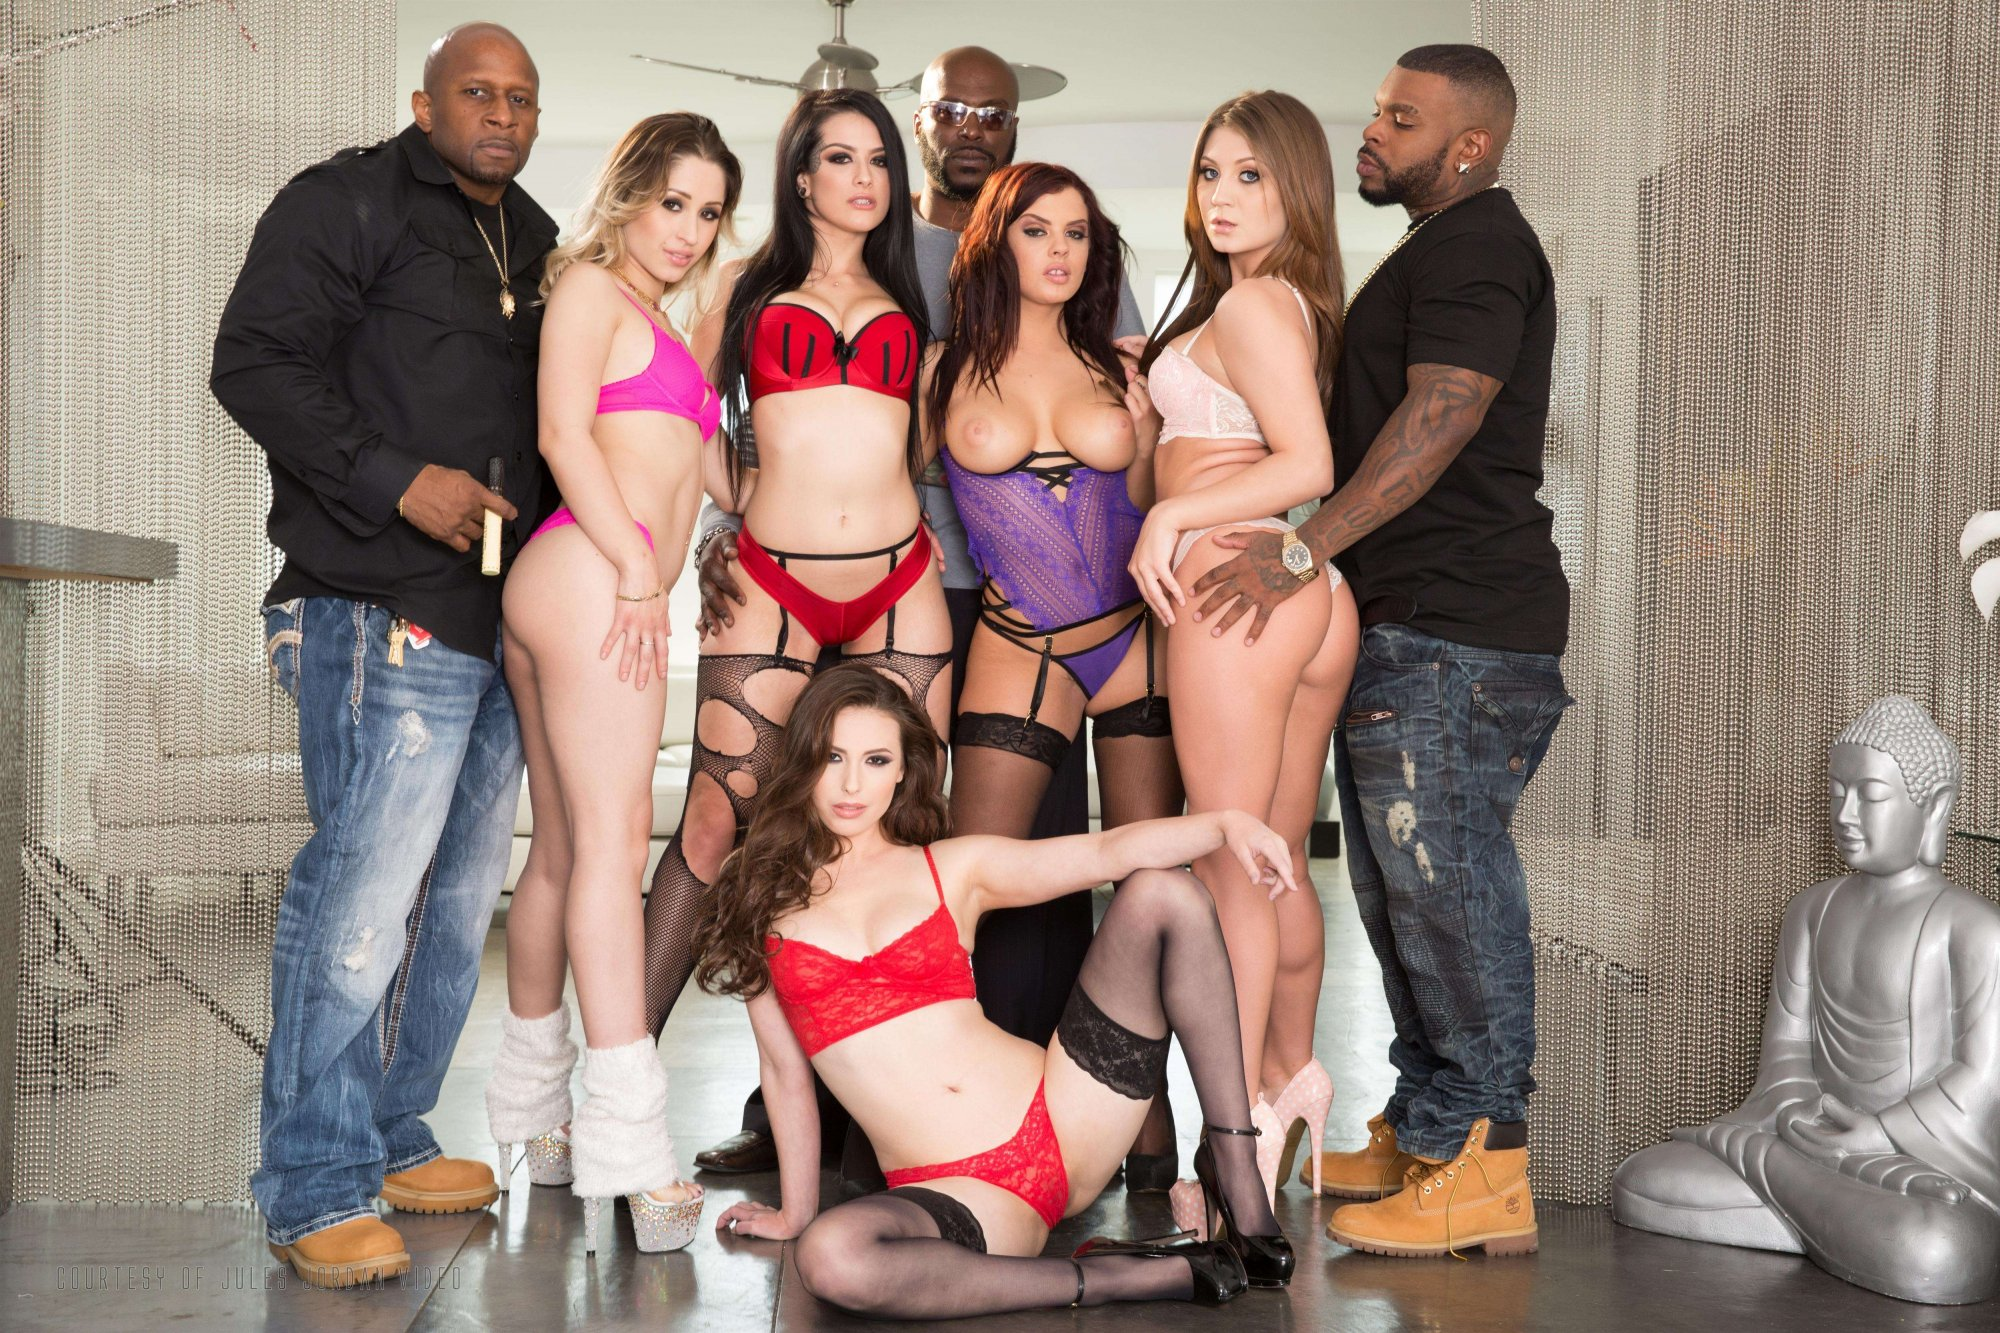 Orgy Masters 8 gallery photo 1 out of 39